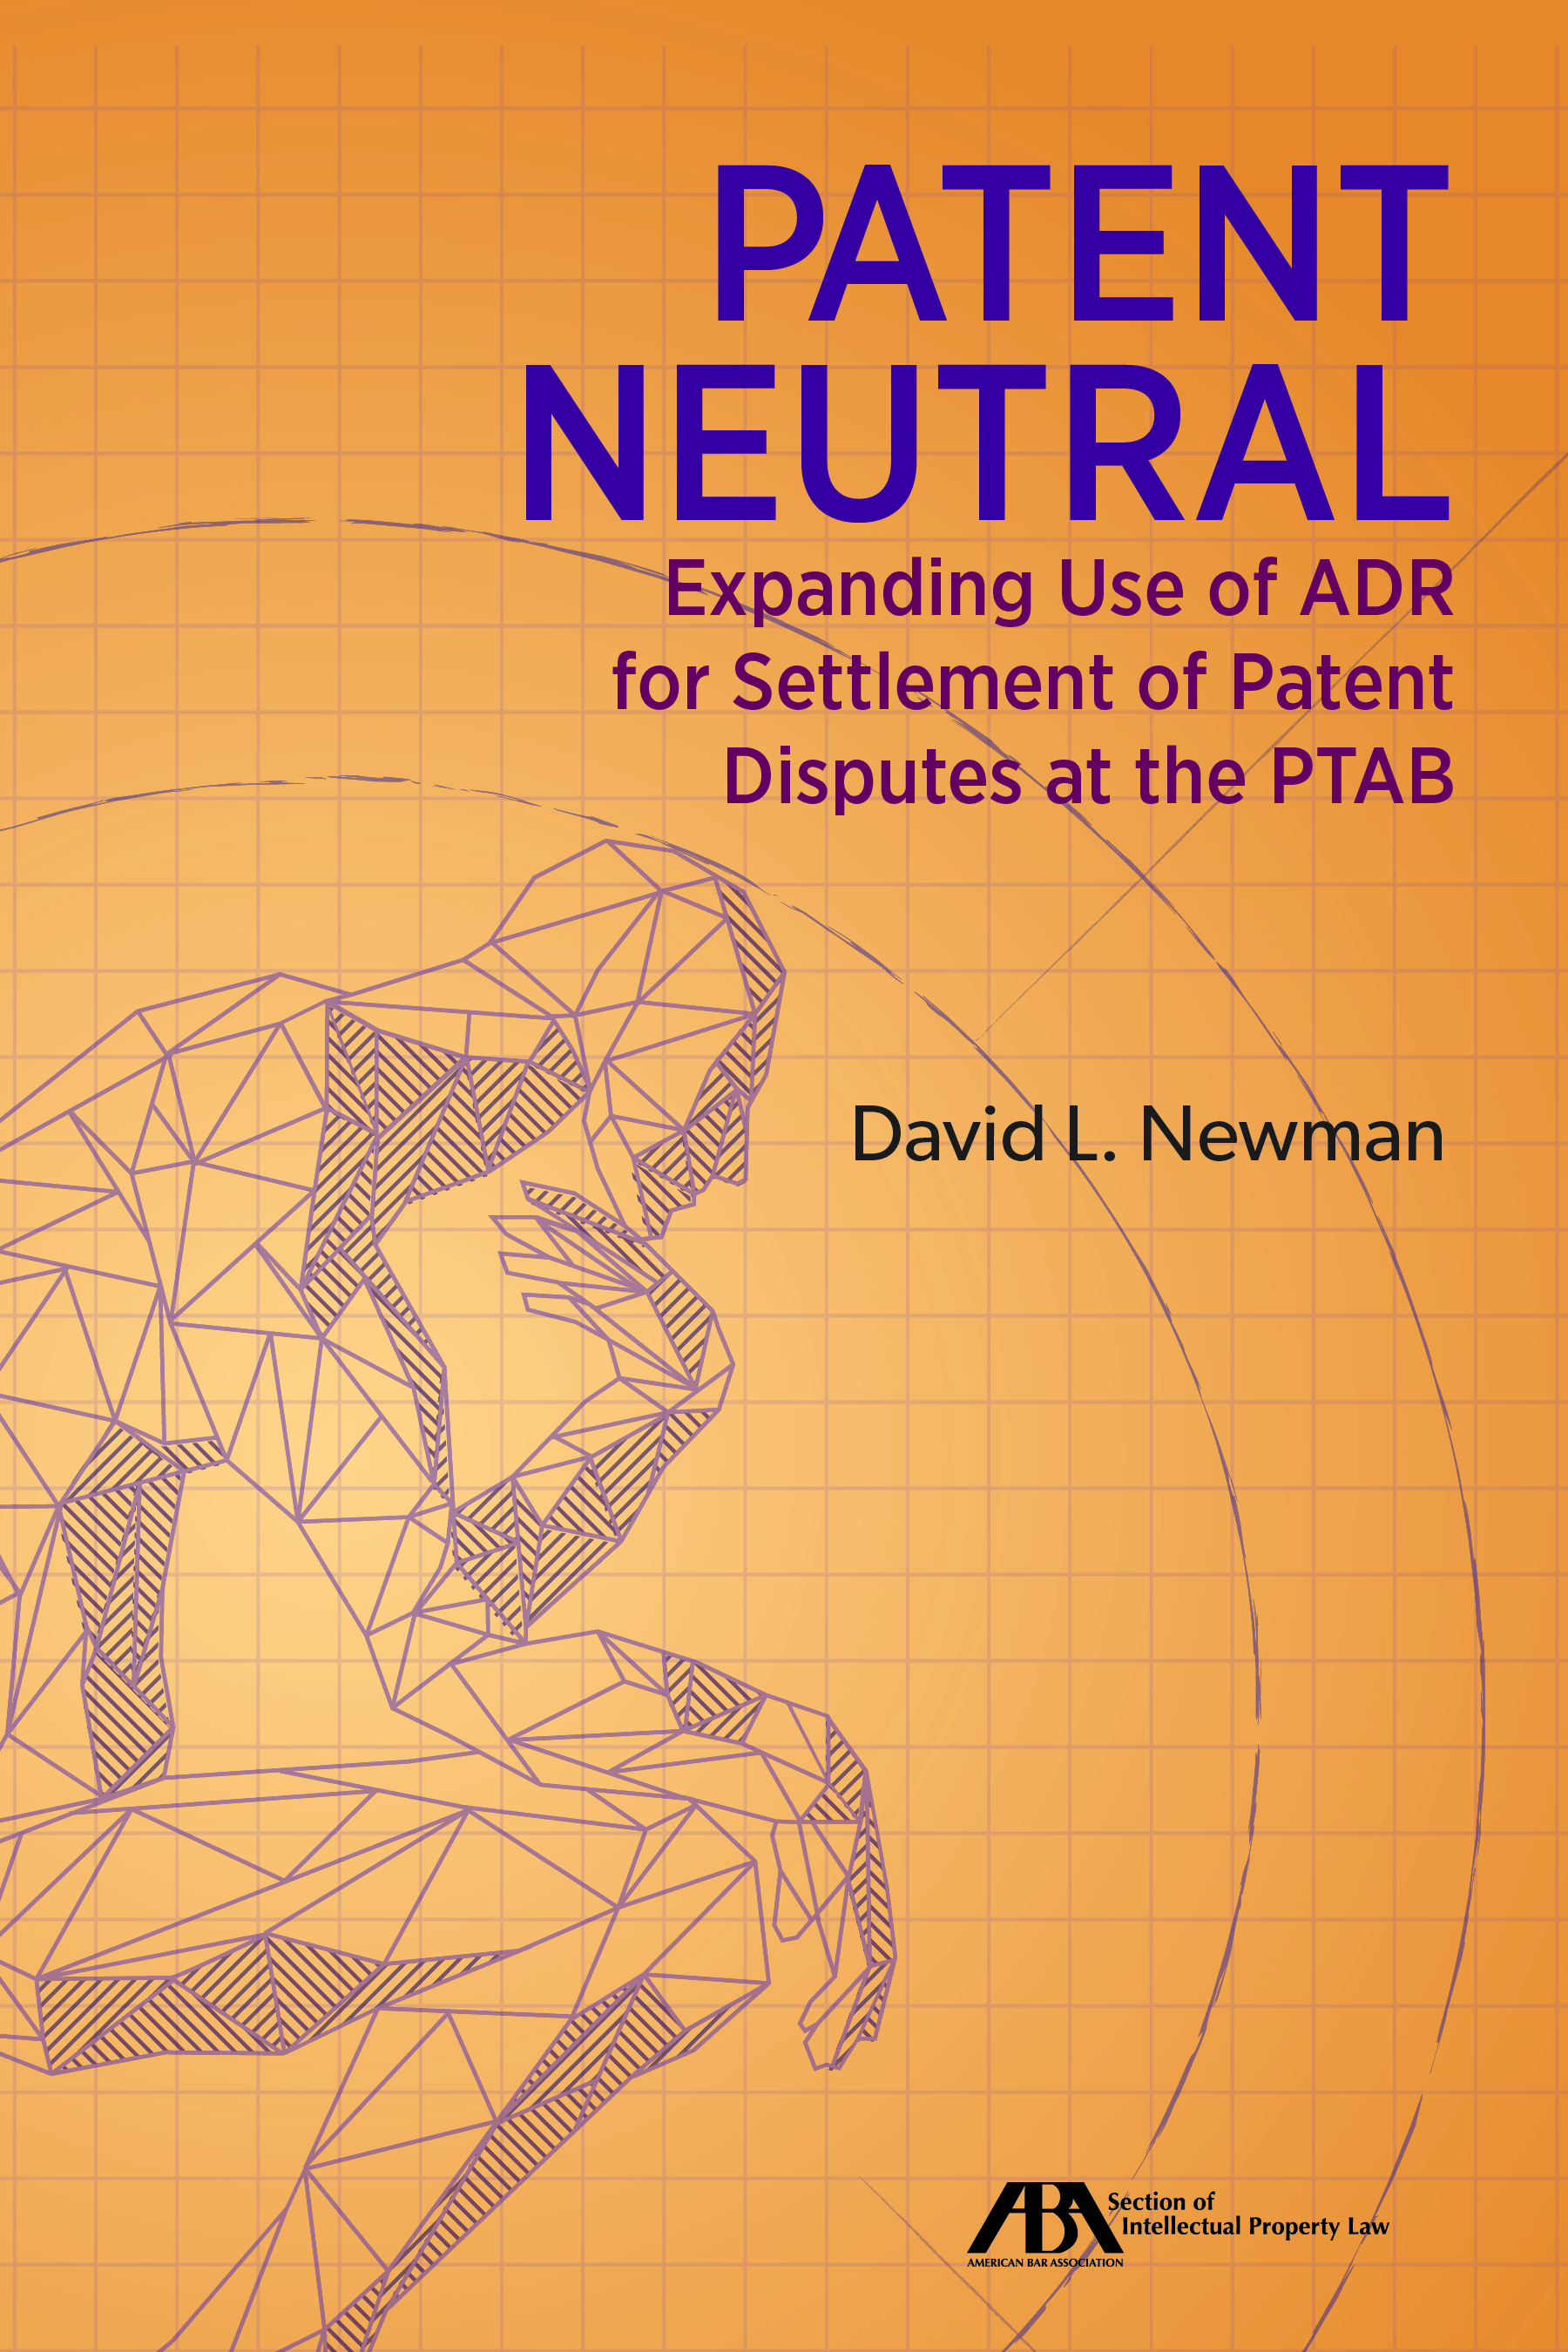 Patent Neutral: Expanding Use of ADR for Settlement of Patent Disputes at the PTAB